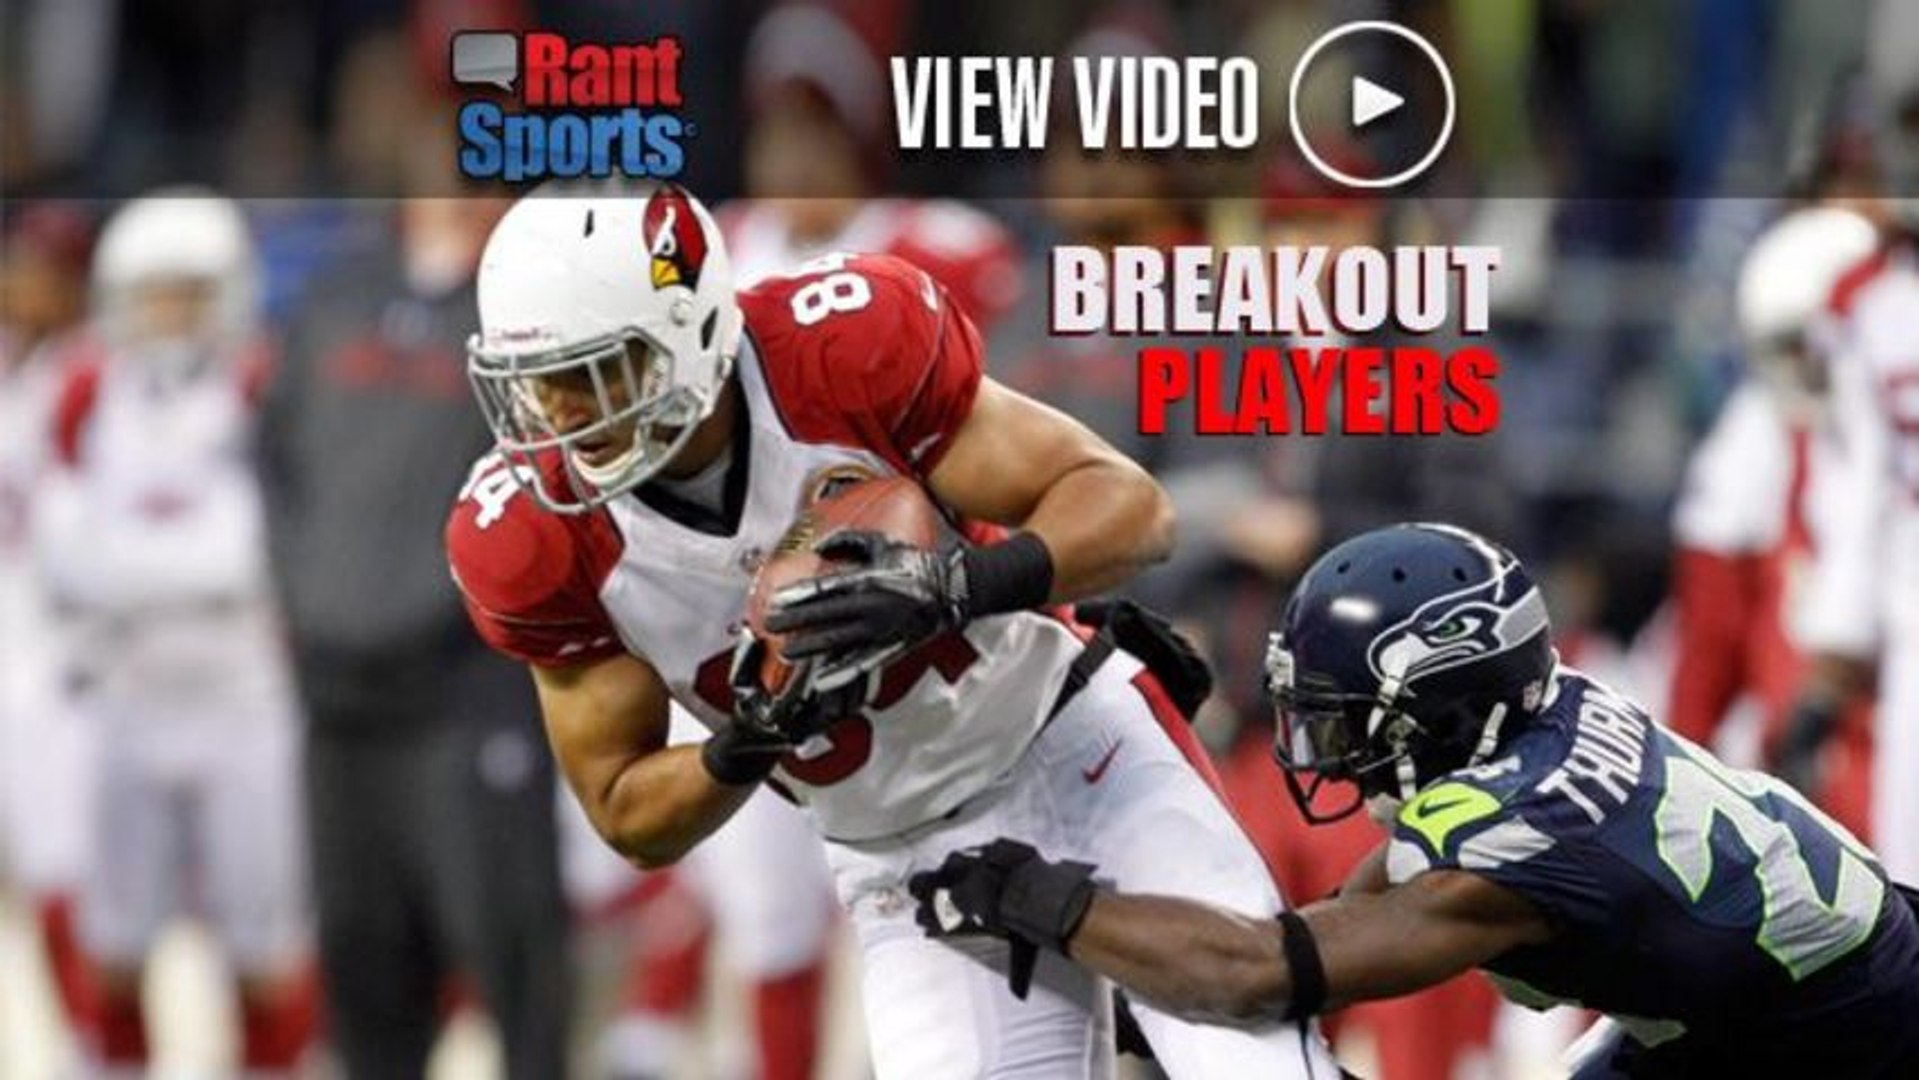 2013 Fantasy Football: Top 5 NFL Players Poised For a Breakout Season